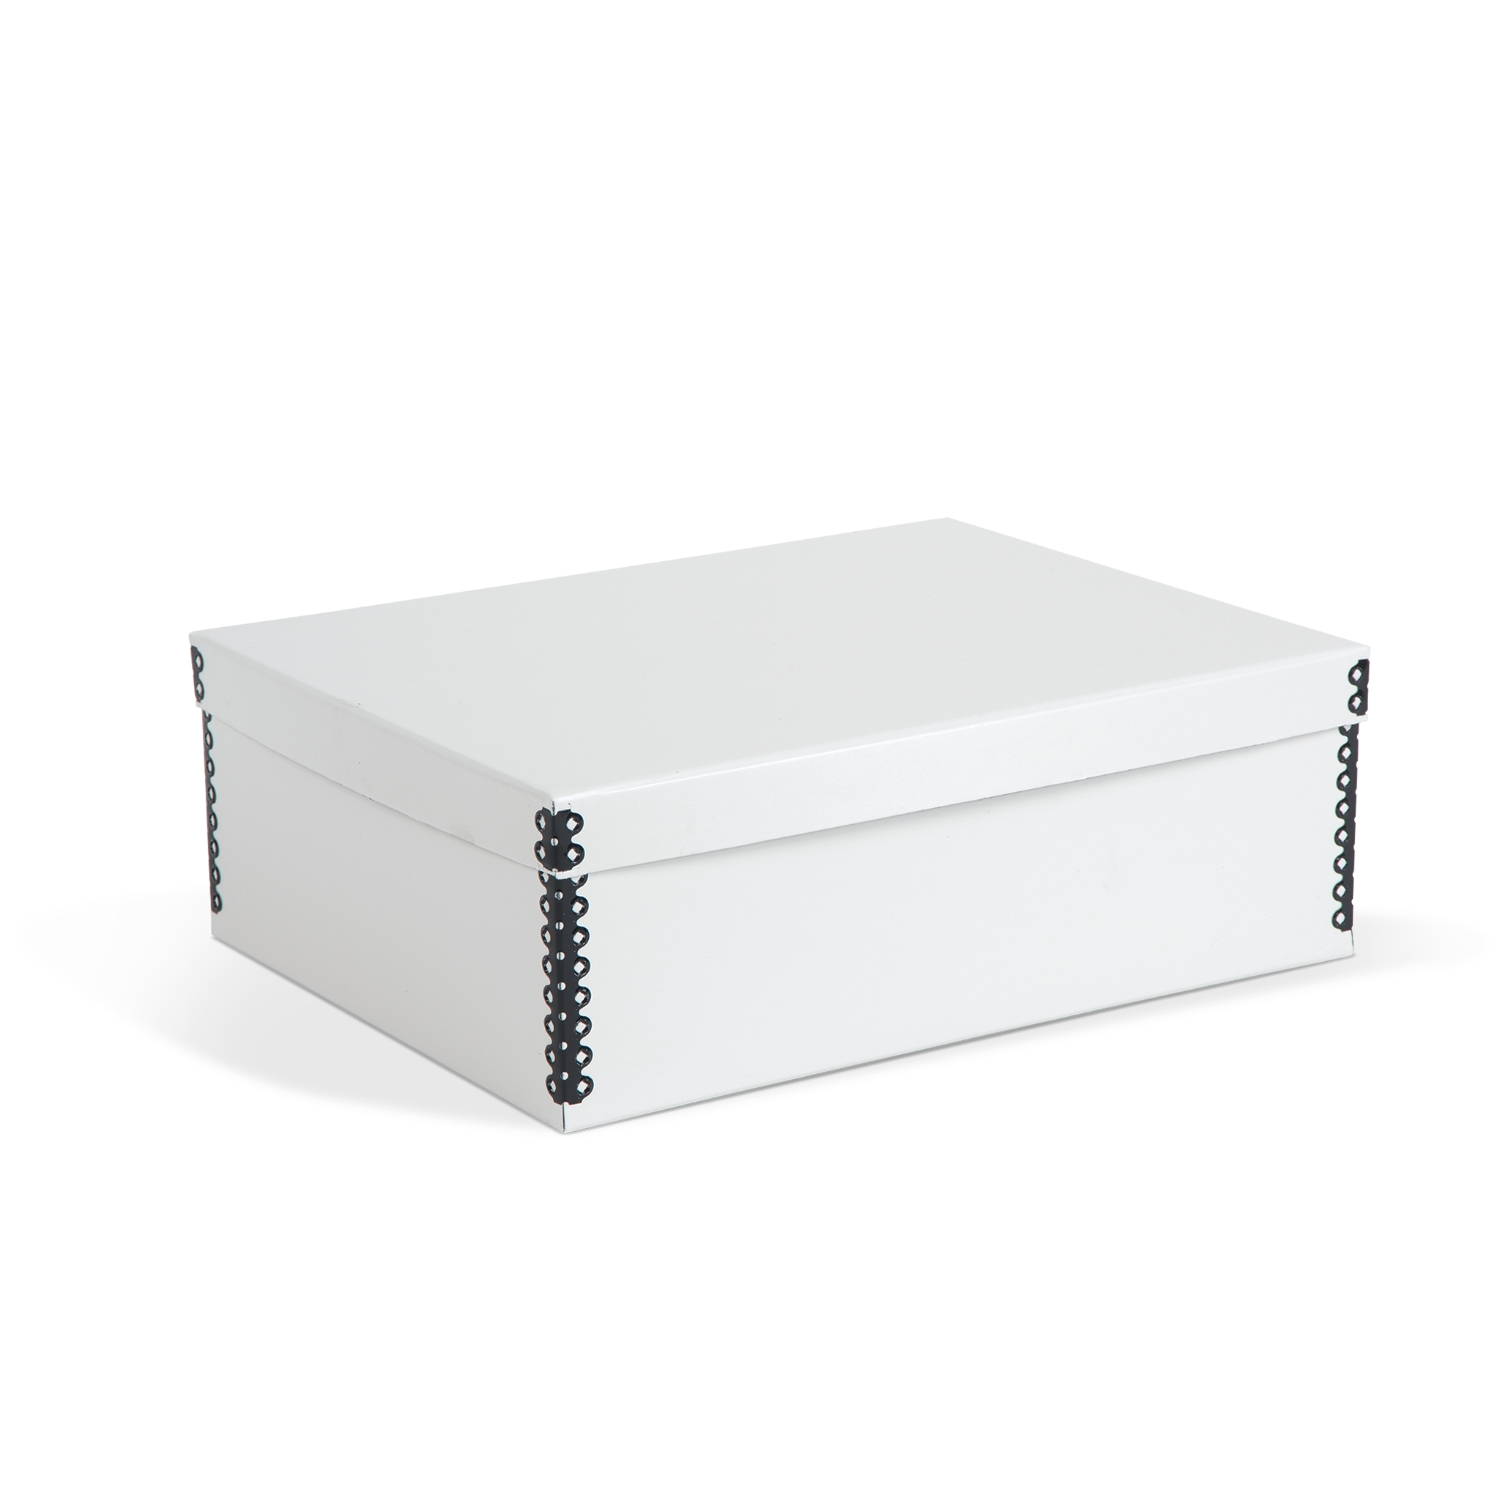 SP Archival White Box-lid-on.jpeg